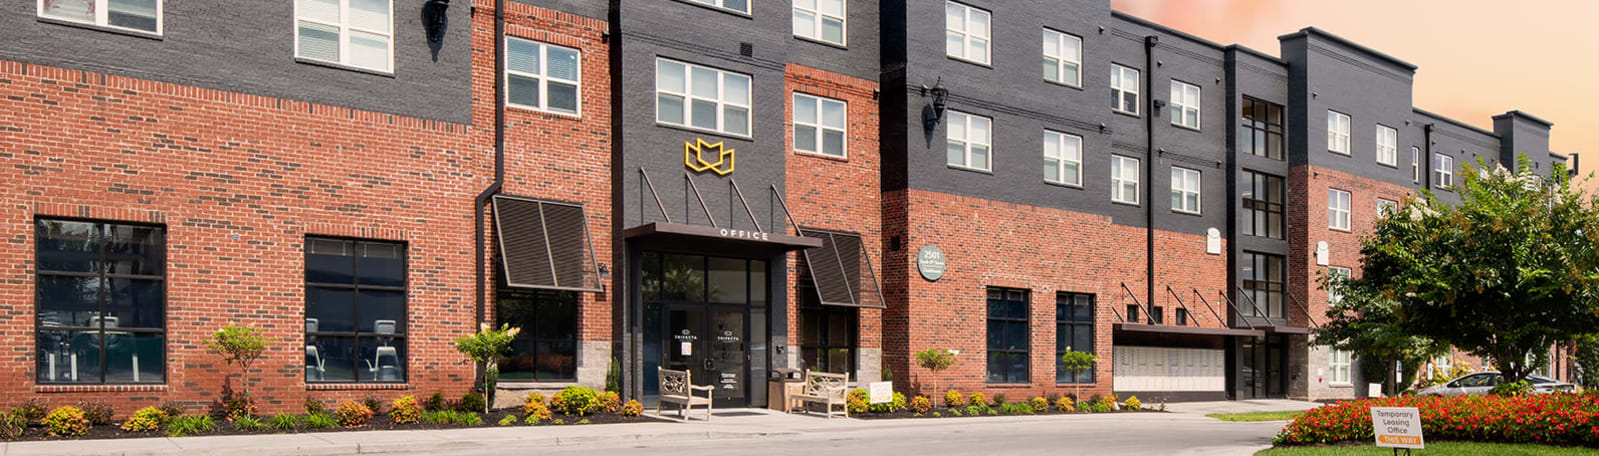 Reviews of Trifecta Apartments in Louisville, Kentucky